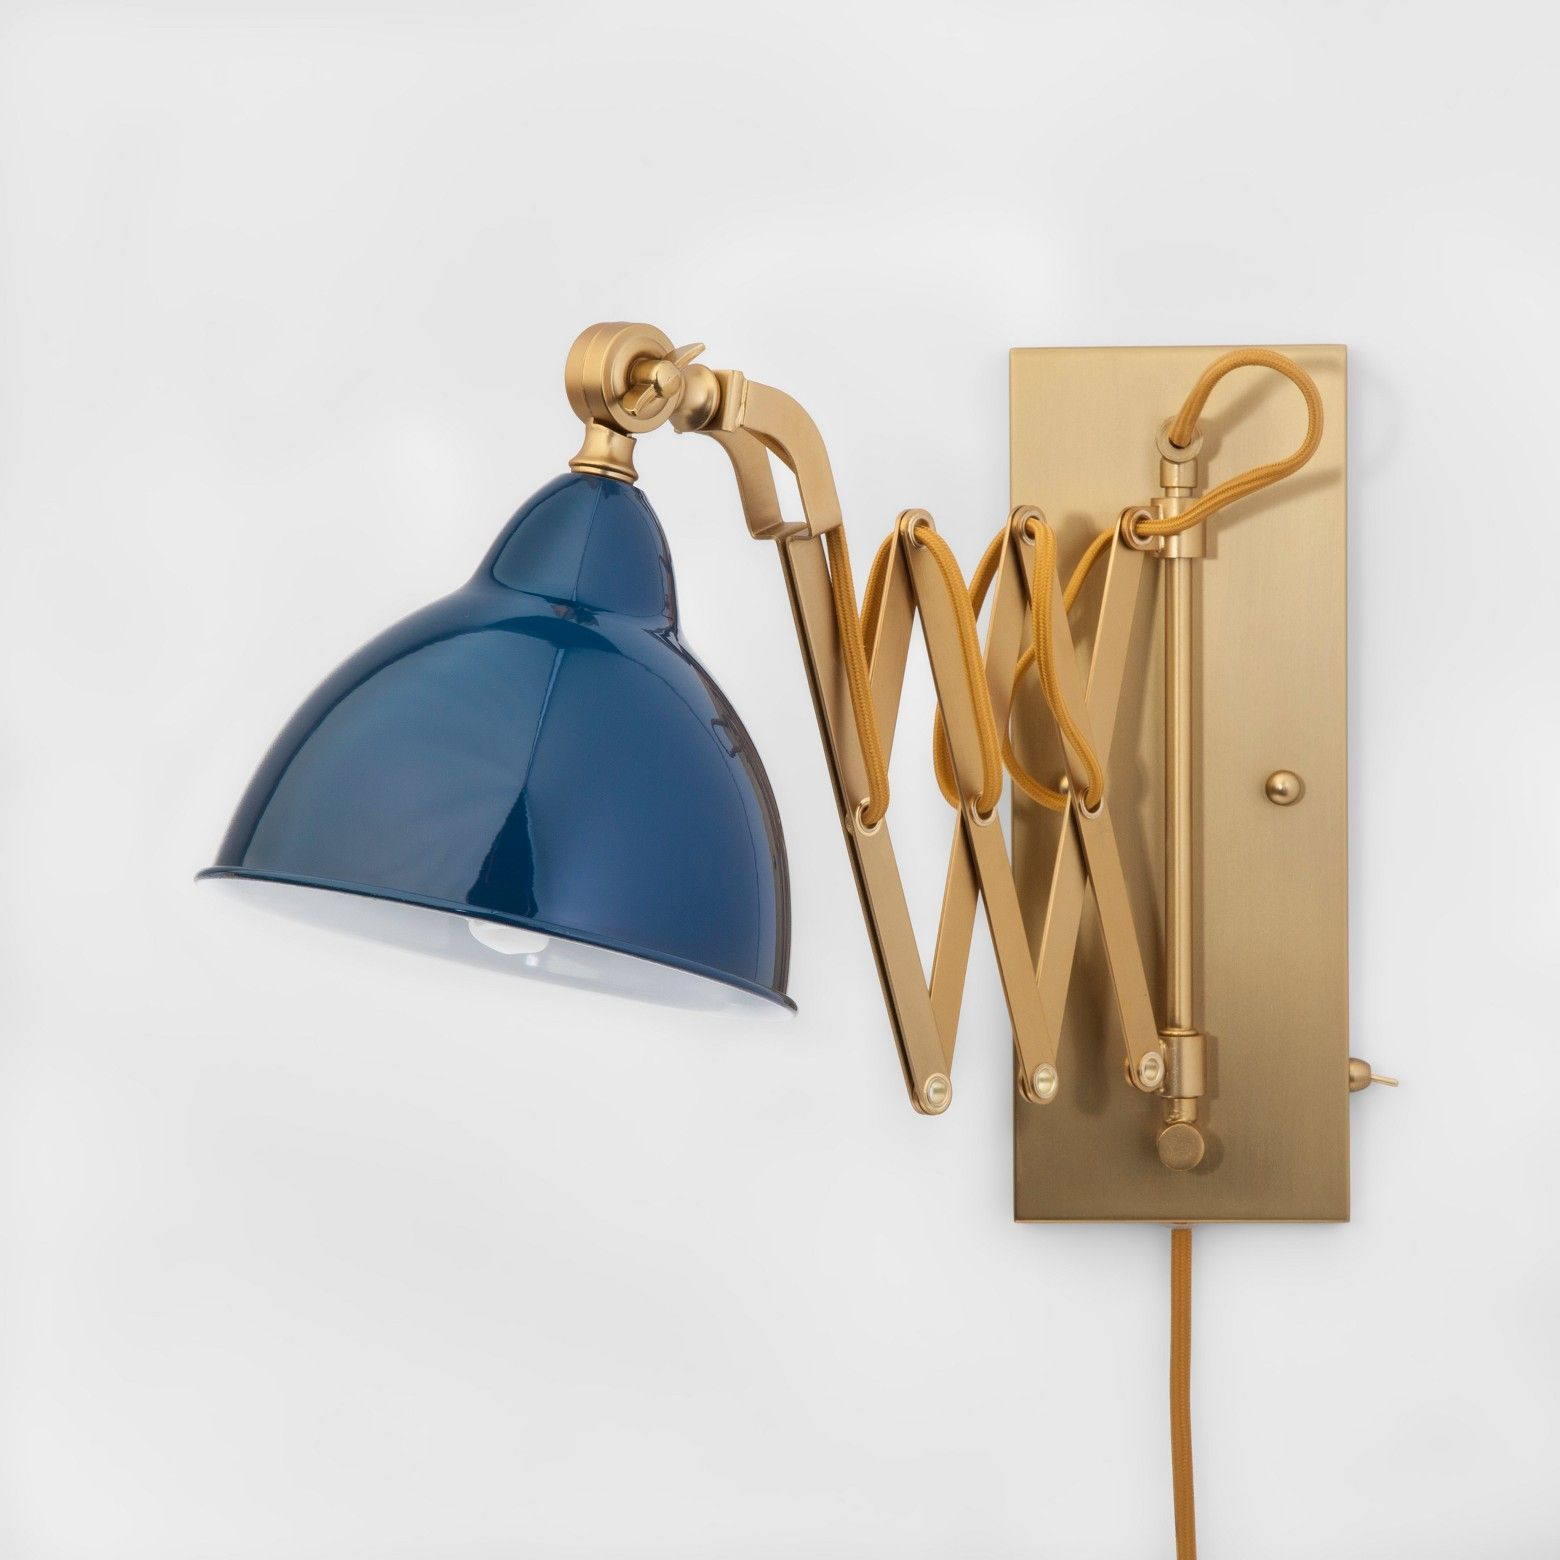 The Wall Sconce Lamp From Threshold Has A Blue Shade And Extends